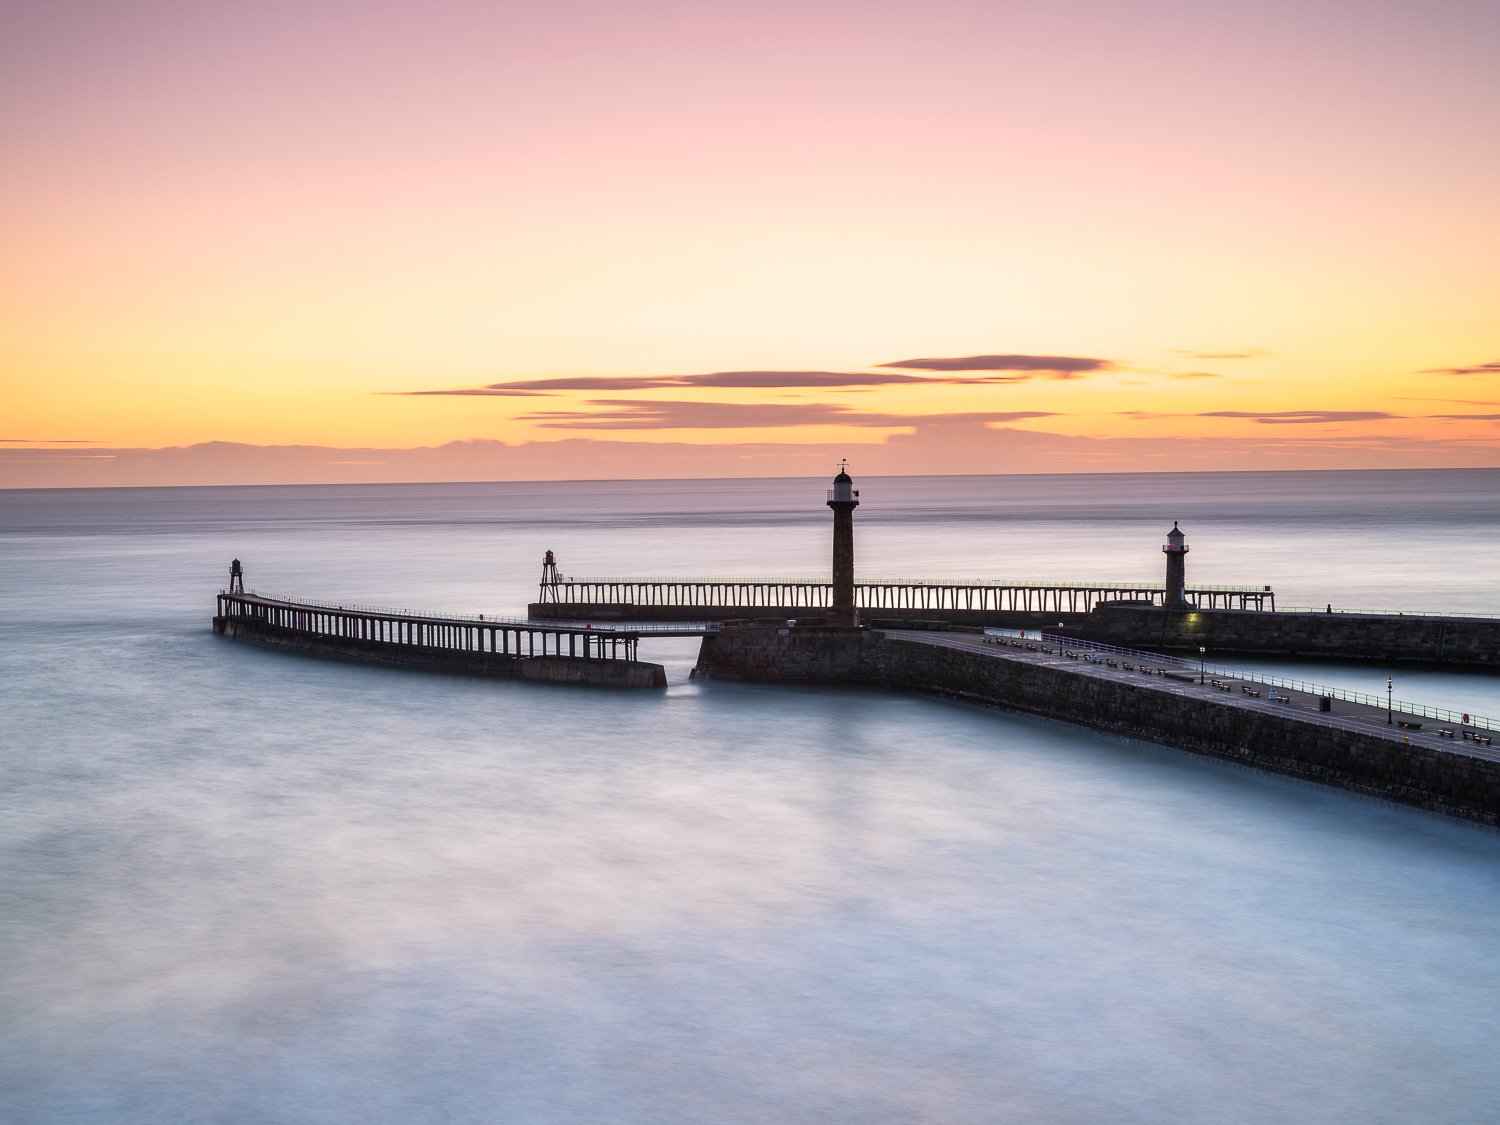 20170626_whitby-1224-Edit.jpg